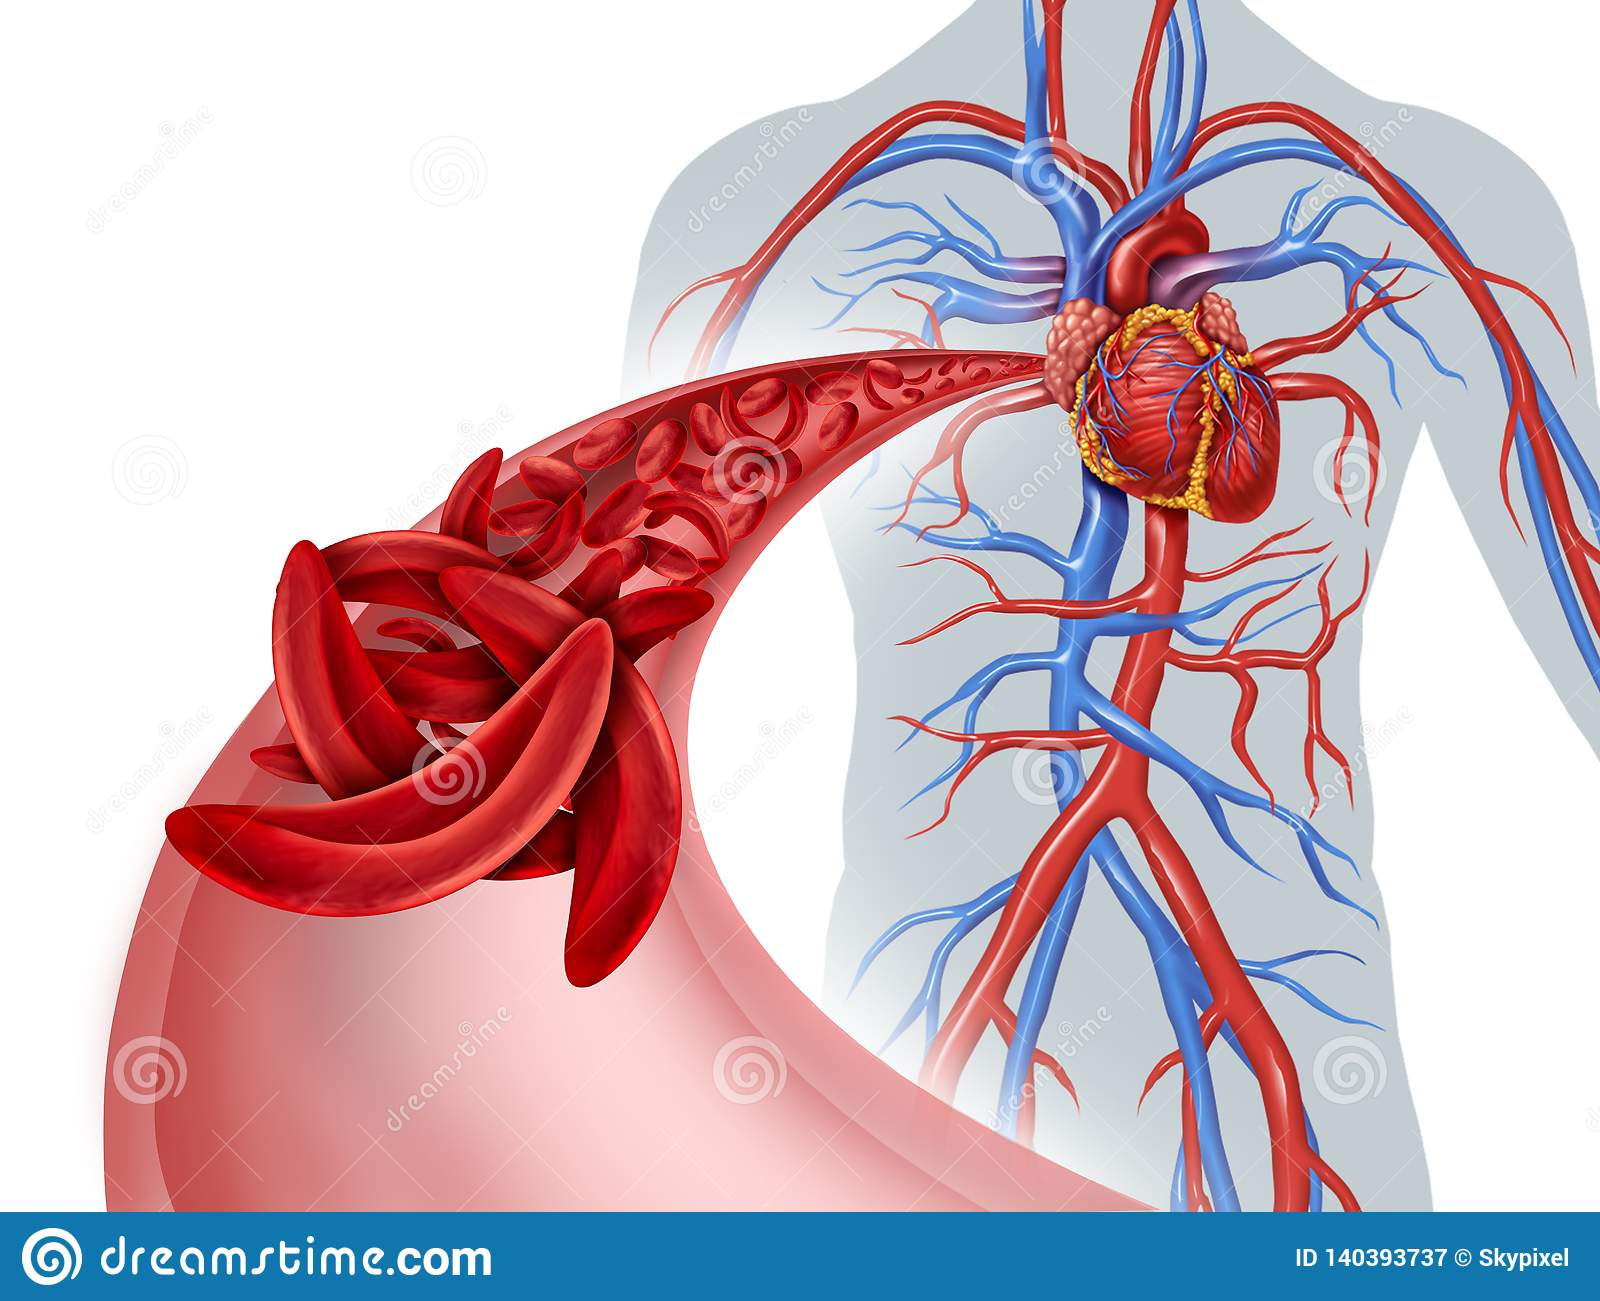 Sickle Cell Circulation Blockage Stock Illustration